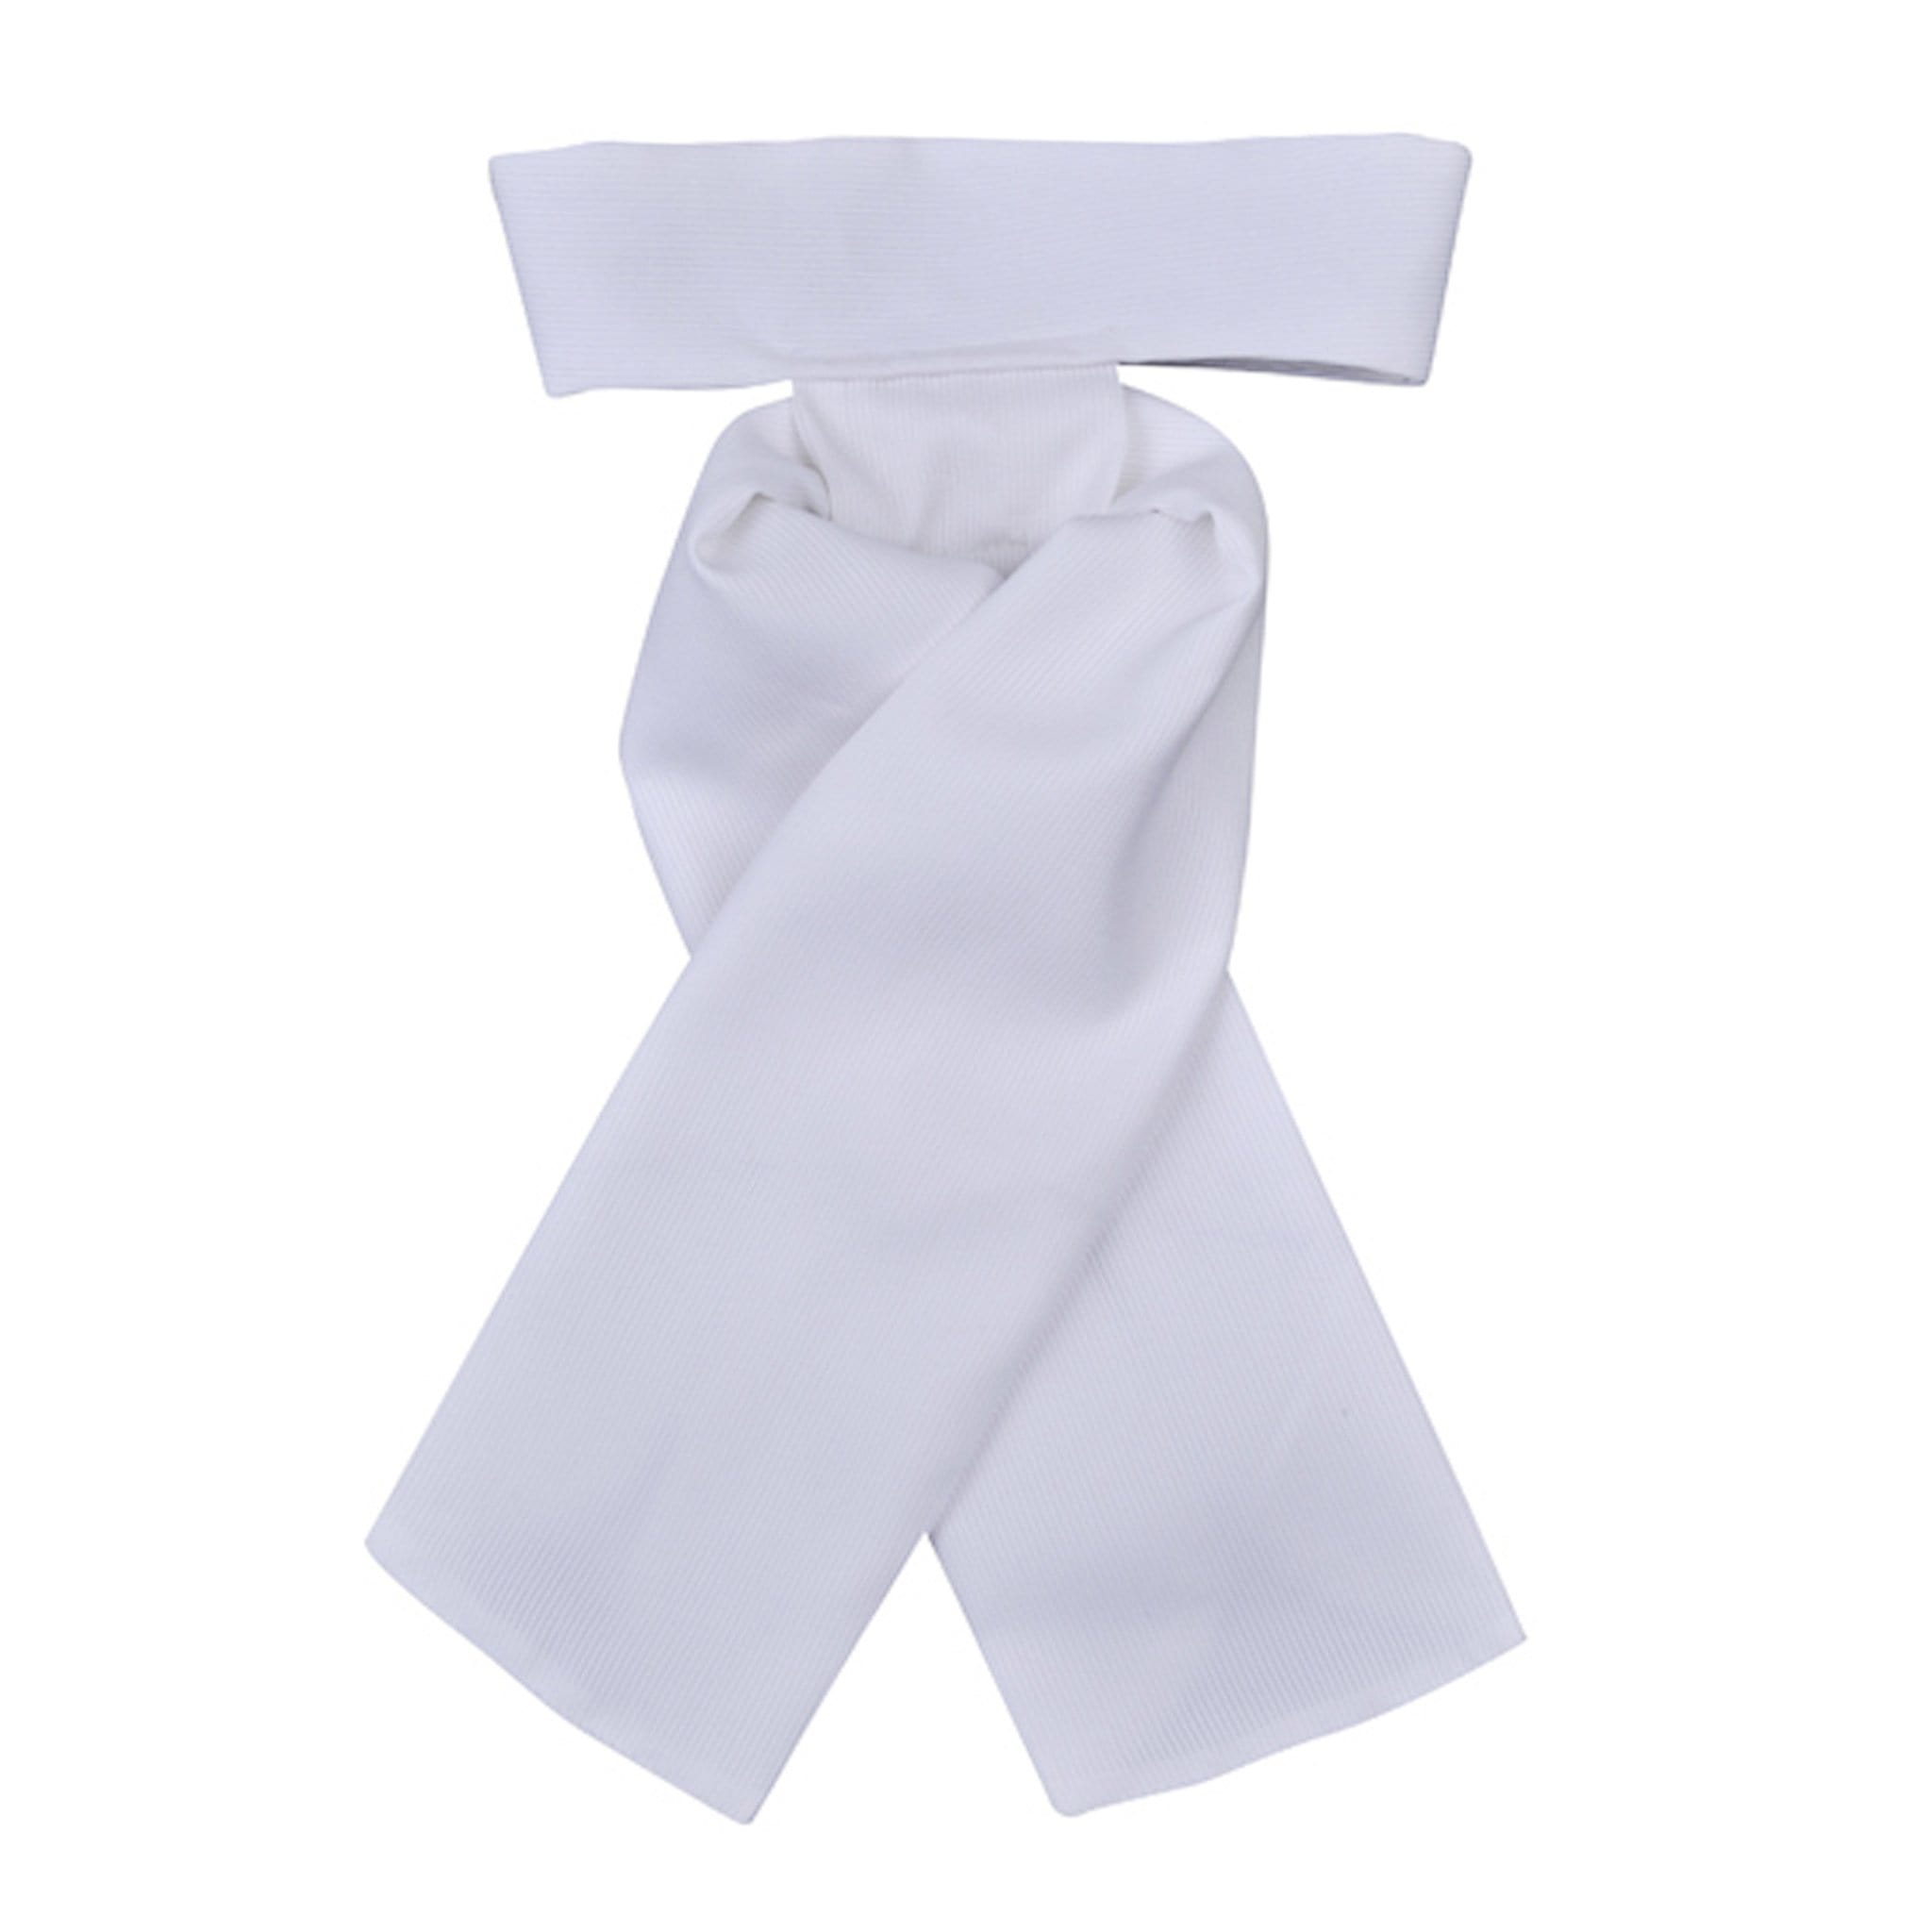 HKM Easy Stock Tie 1486 Medium White